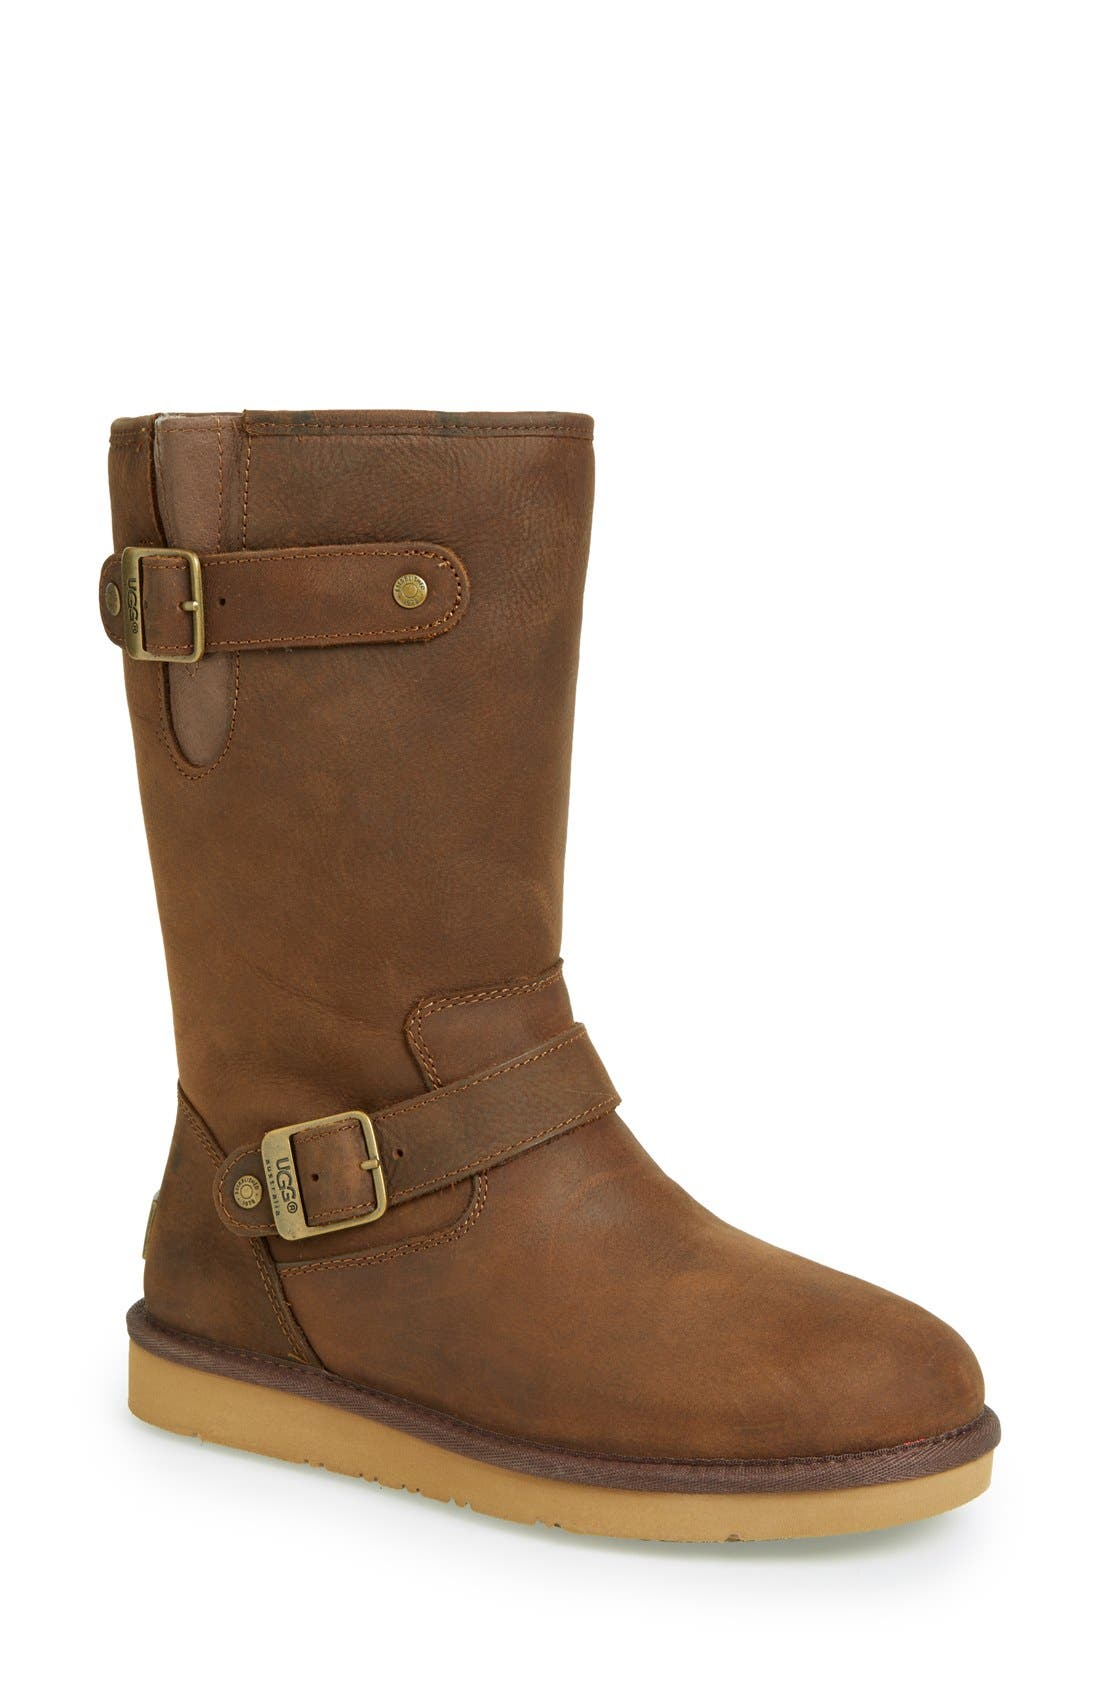 Alternate Image 1 Selected - UGG® Australia 'Sutter' Boot (Women)